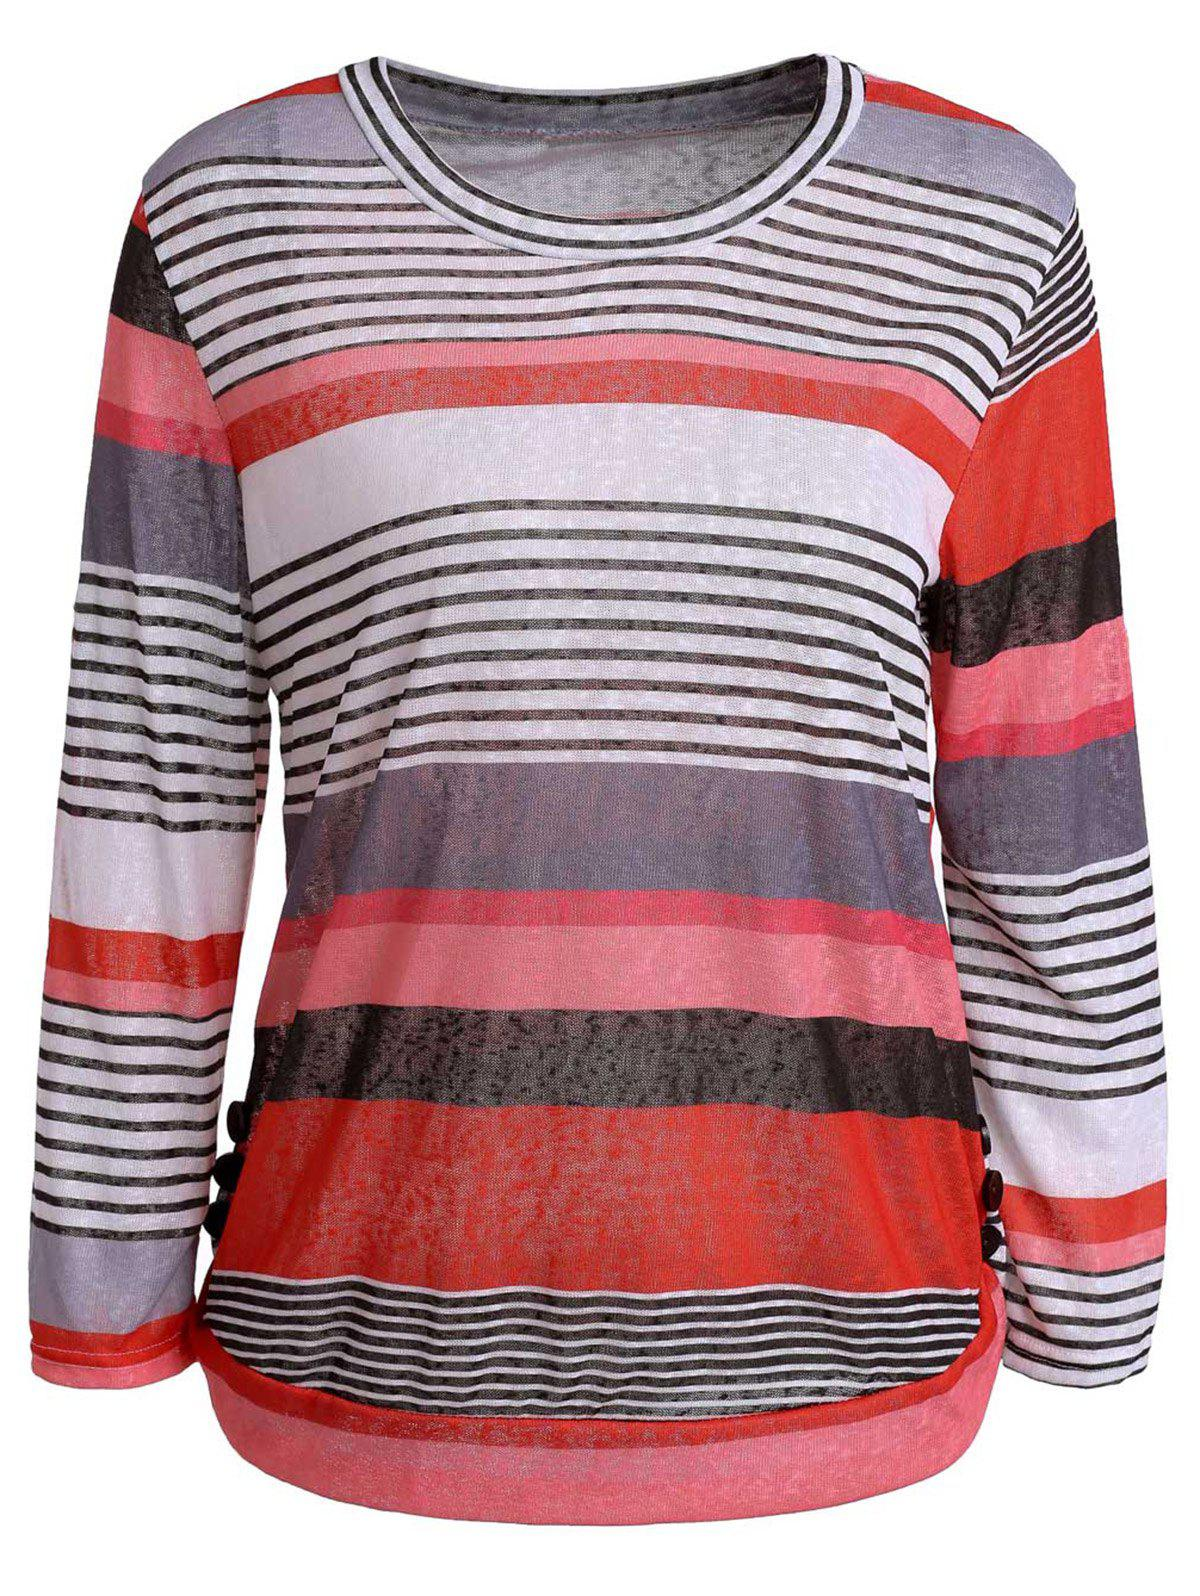 Simple Style Scoop Neck 3/4 Sleeve Striped Pullover Knitwear For Women - JACINTH S